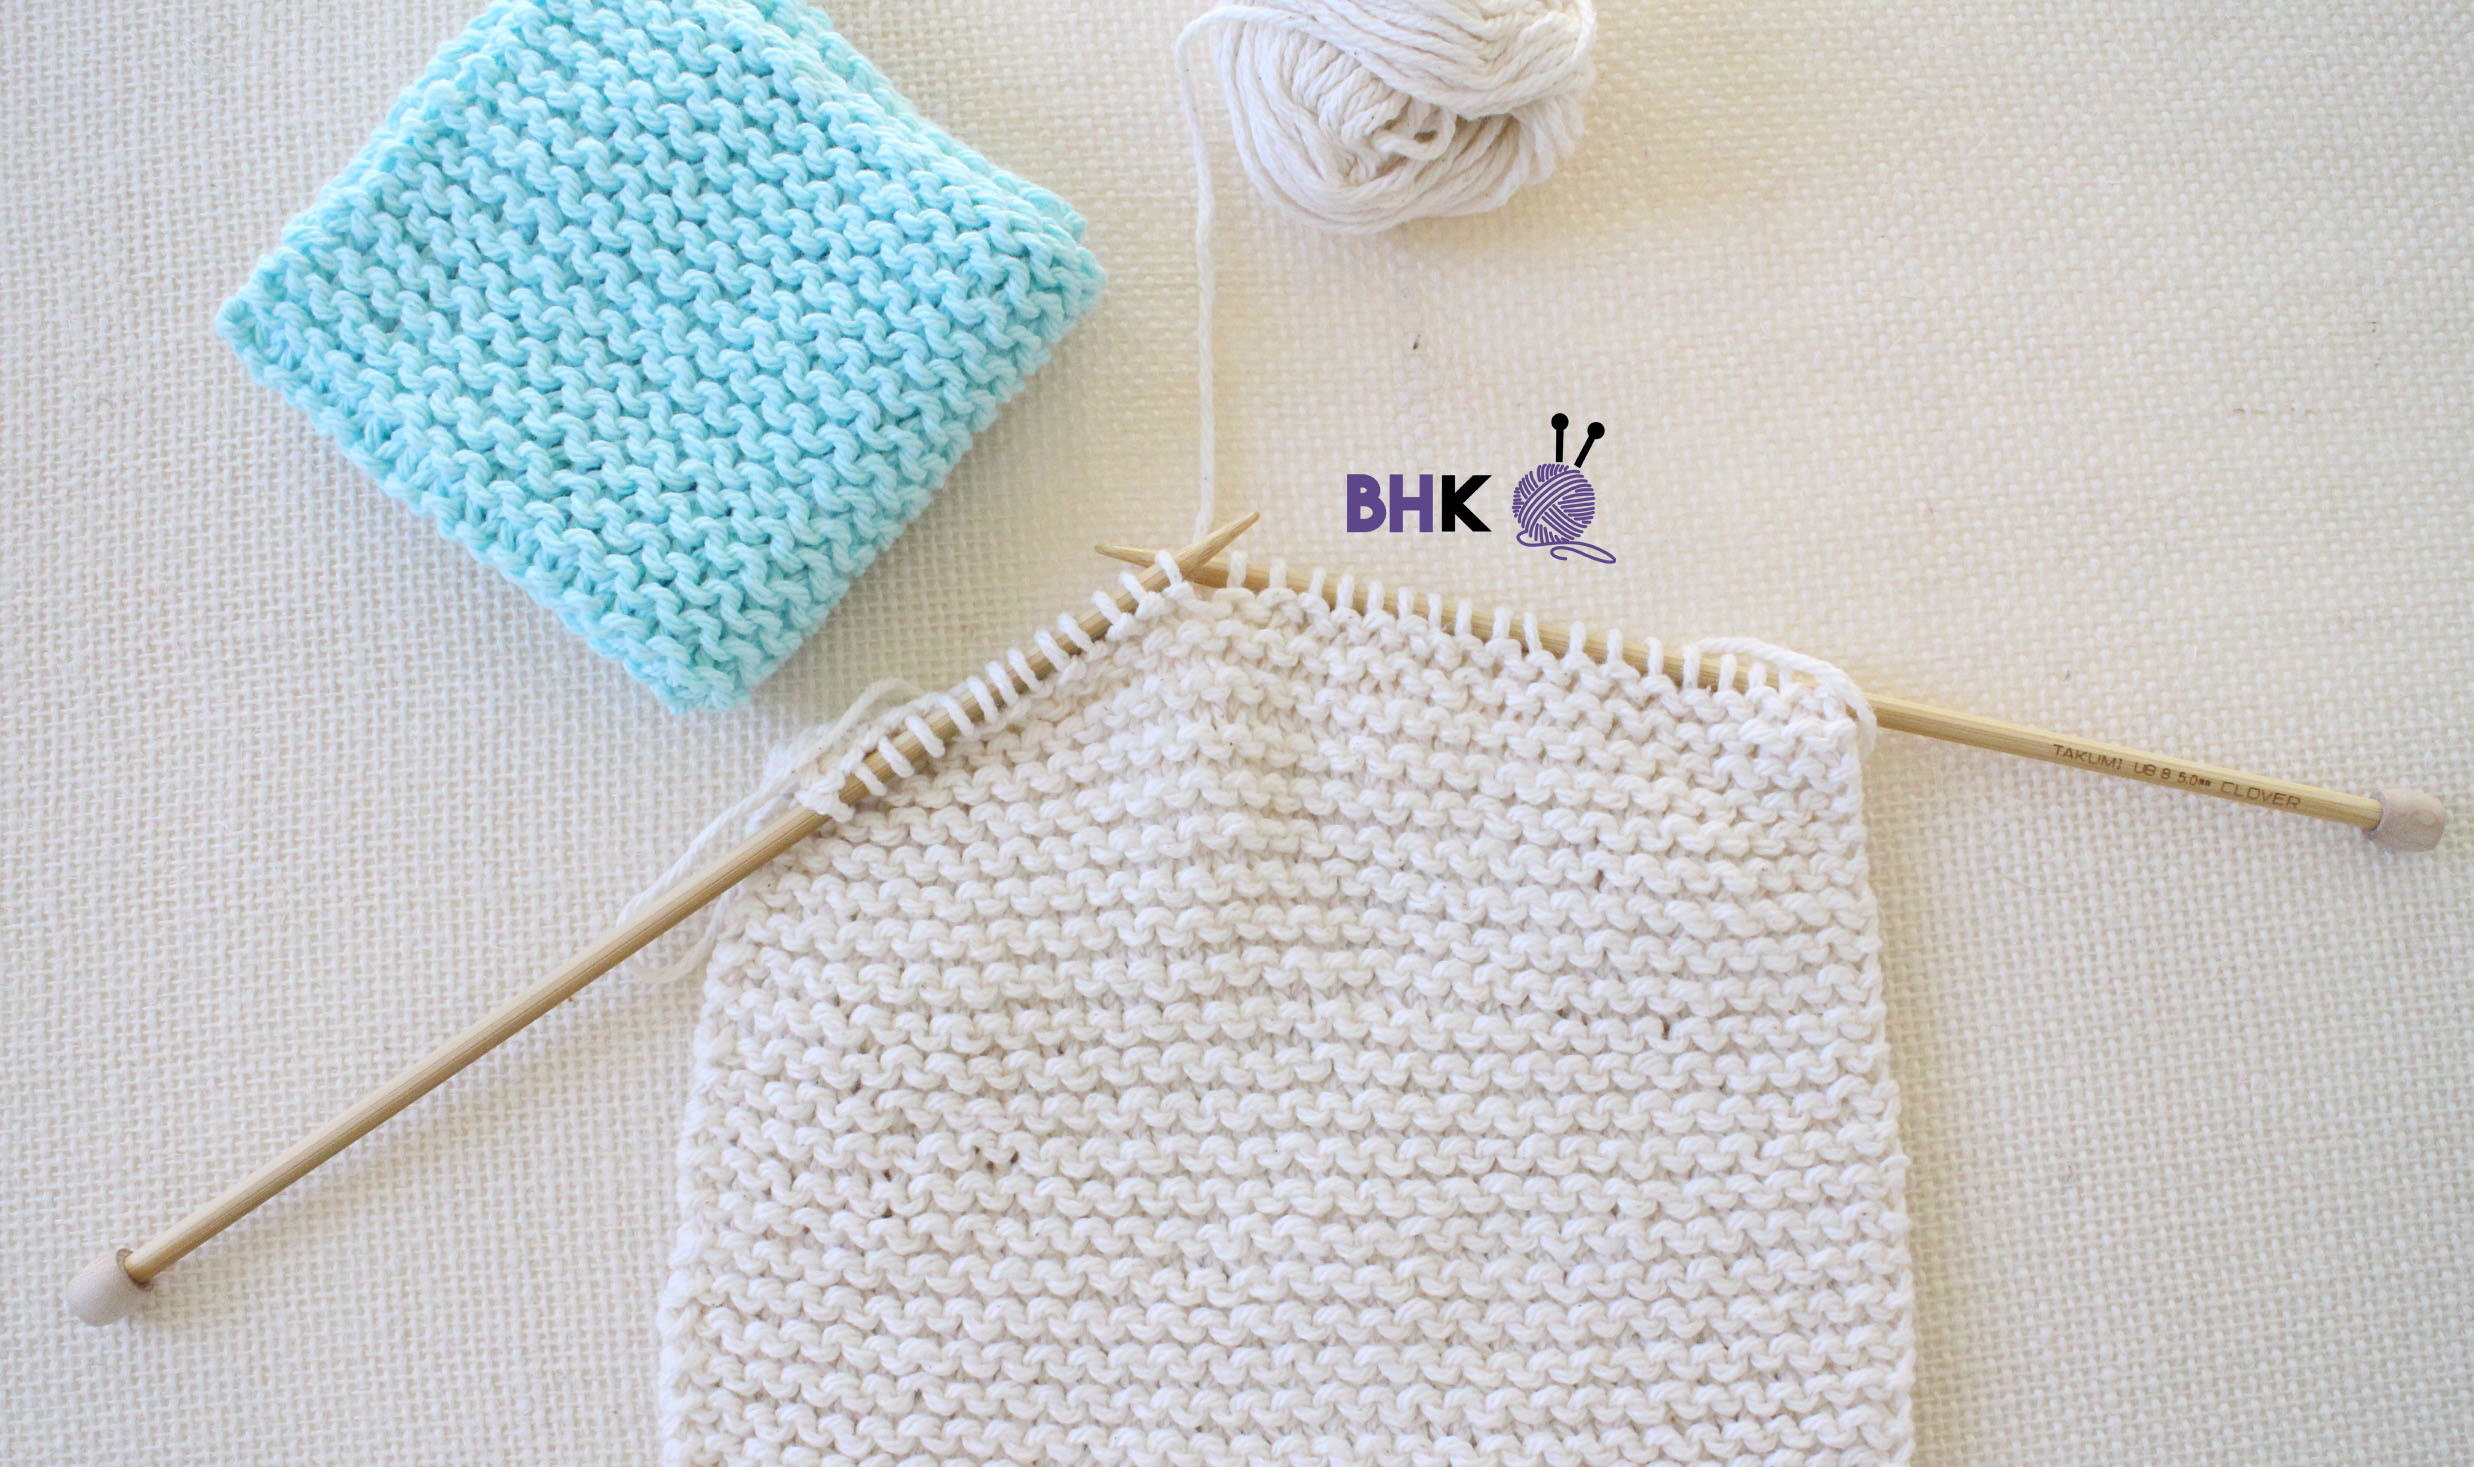 Awesome Knit Washcloth Free Pattern for Beginners B Hooked Free Knitting Patterns for Beginners Of New 40 Models Free Knitting Patterns for Beginners